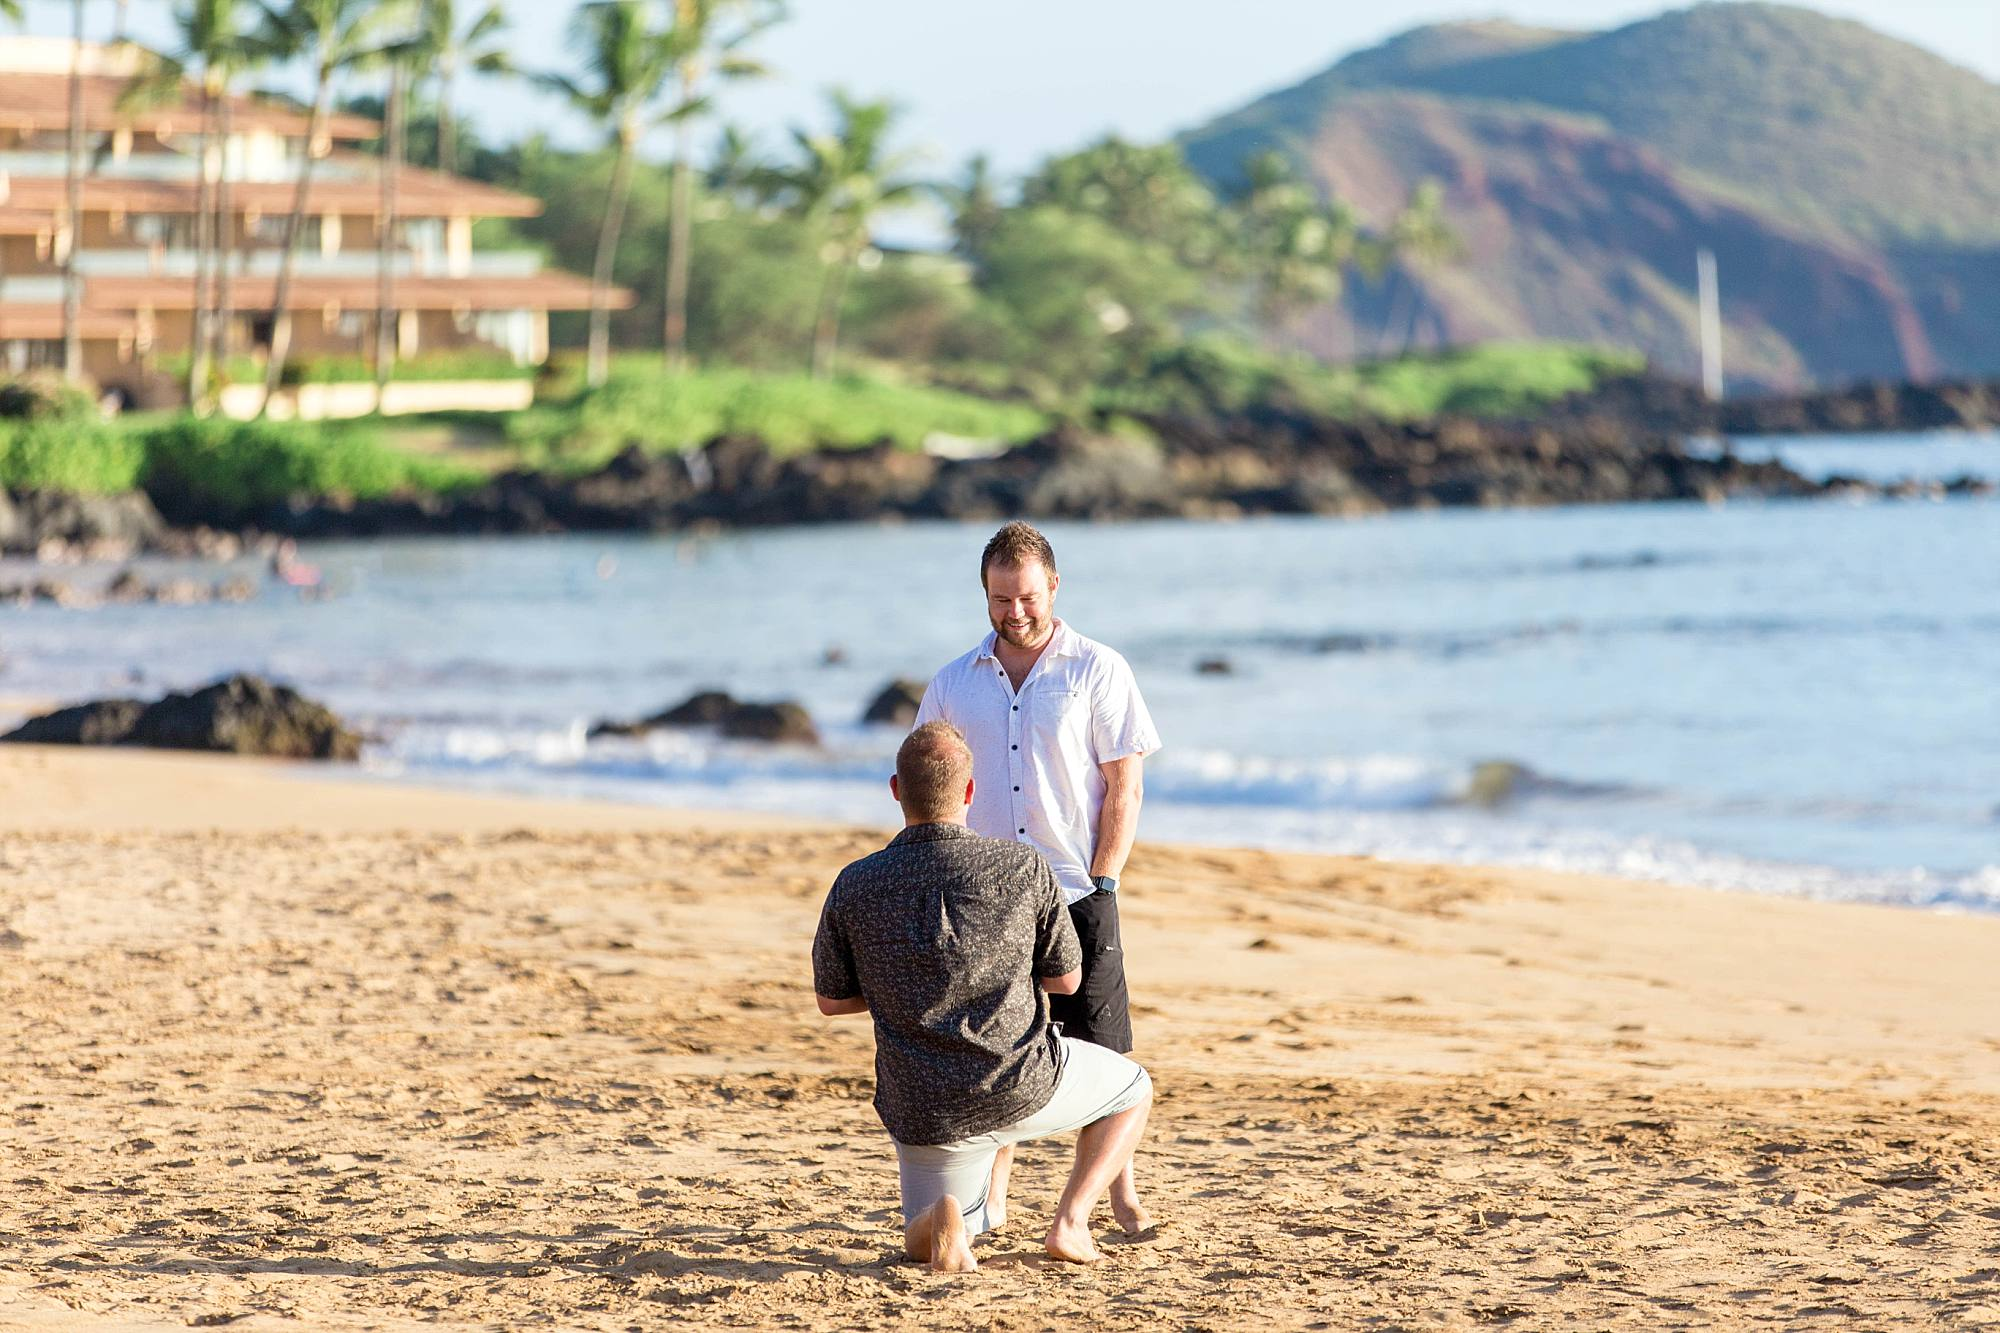 Down on one knee, man asking his boyfriend to marry him, South Maui